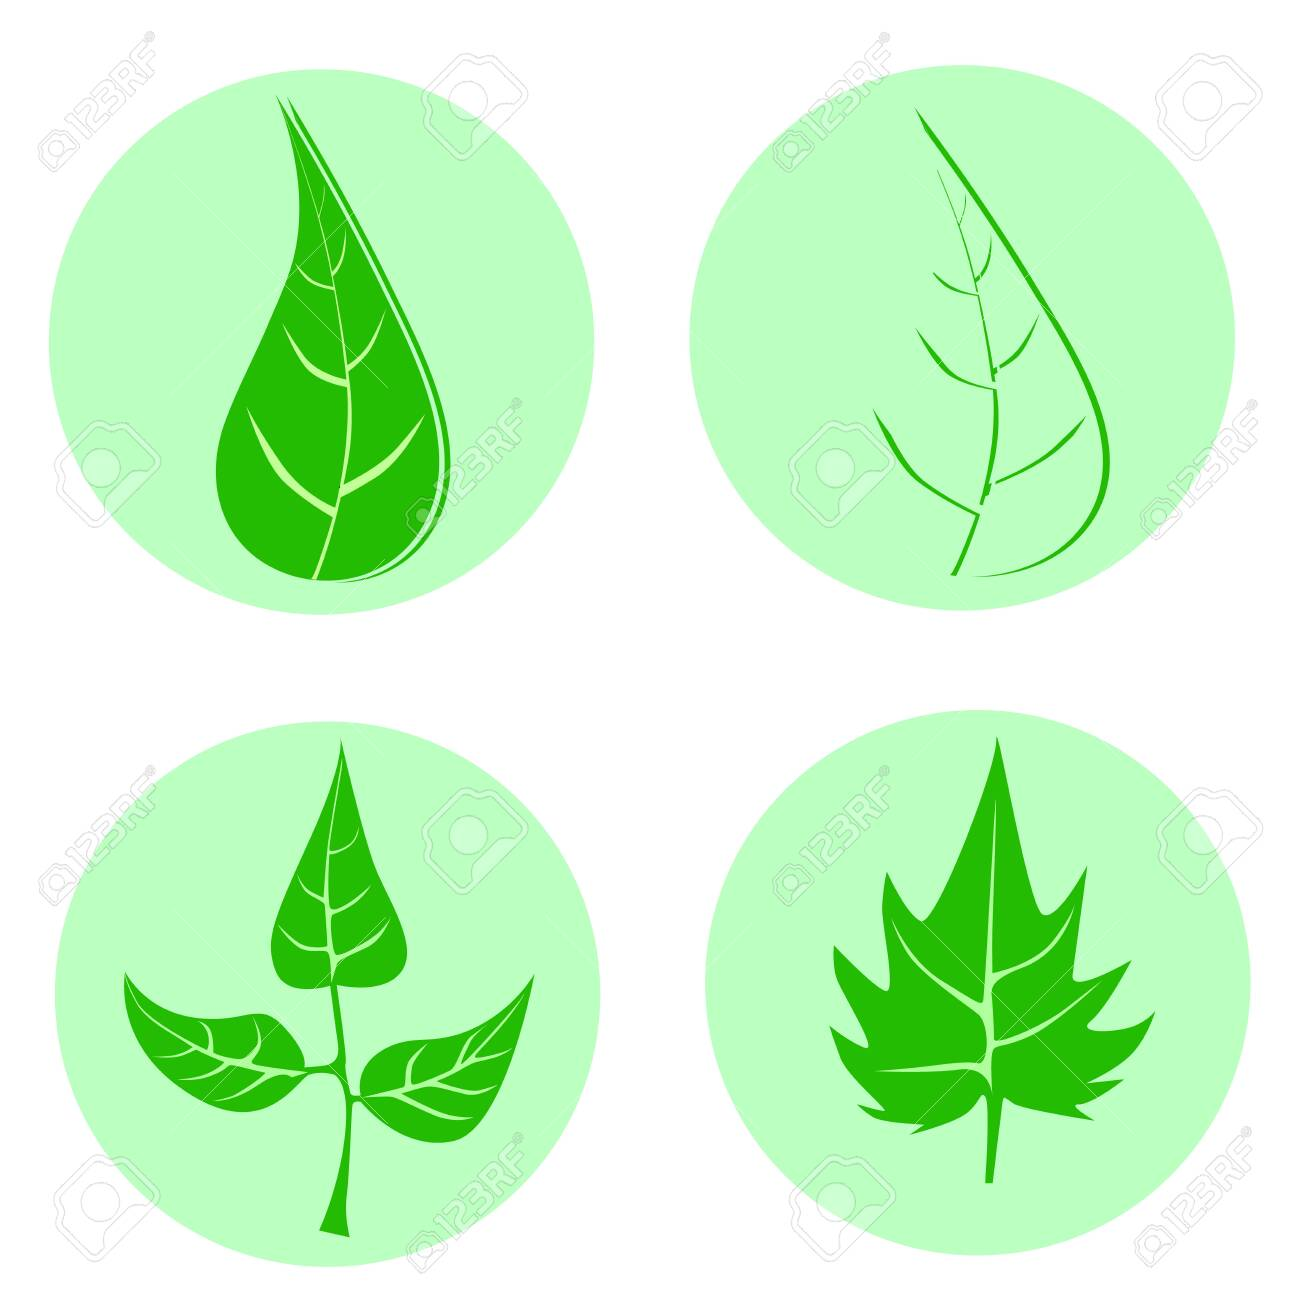 Set of green leaves design elements. This image is a vector illustration.Leaves icon - 140674492